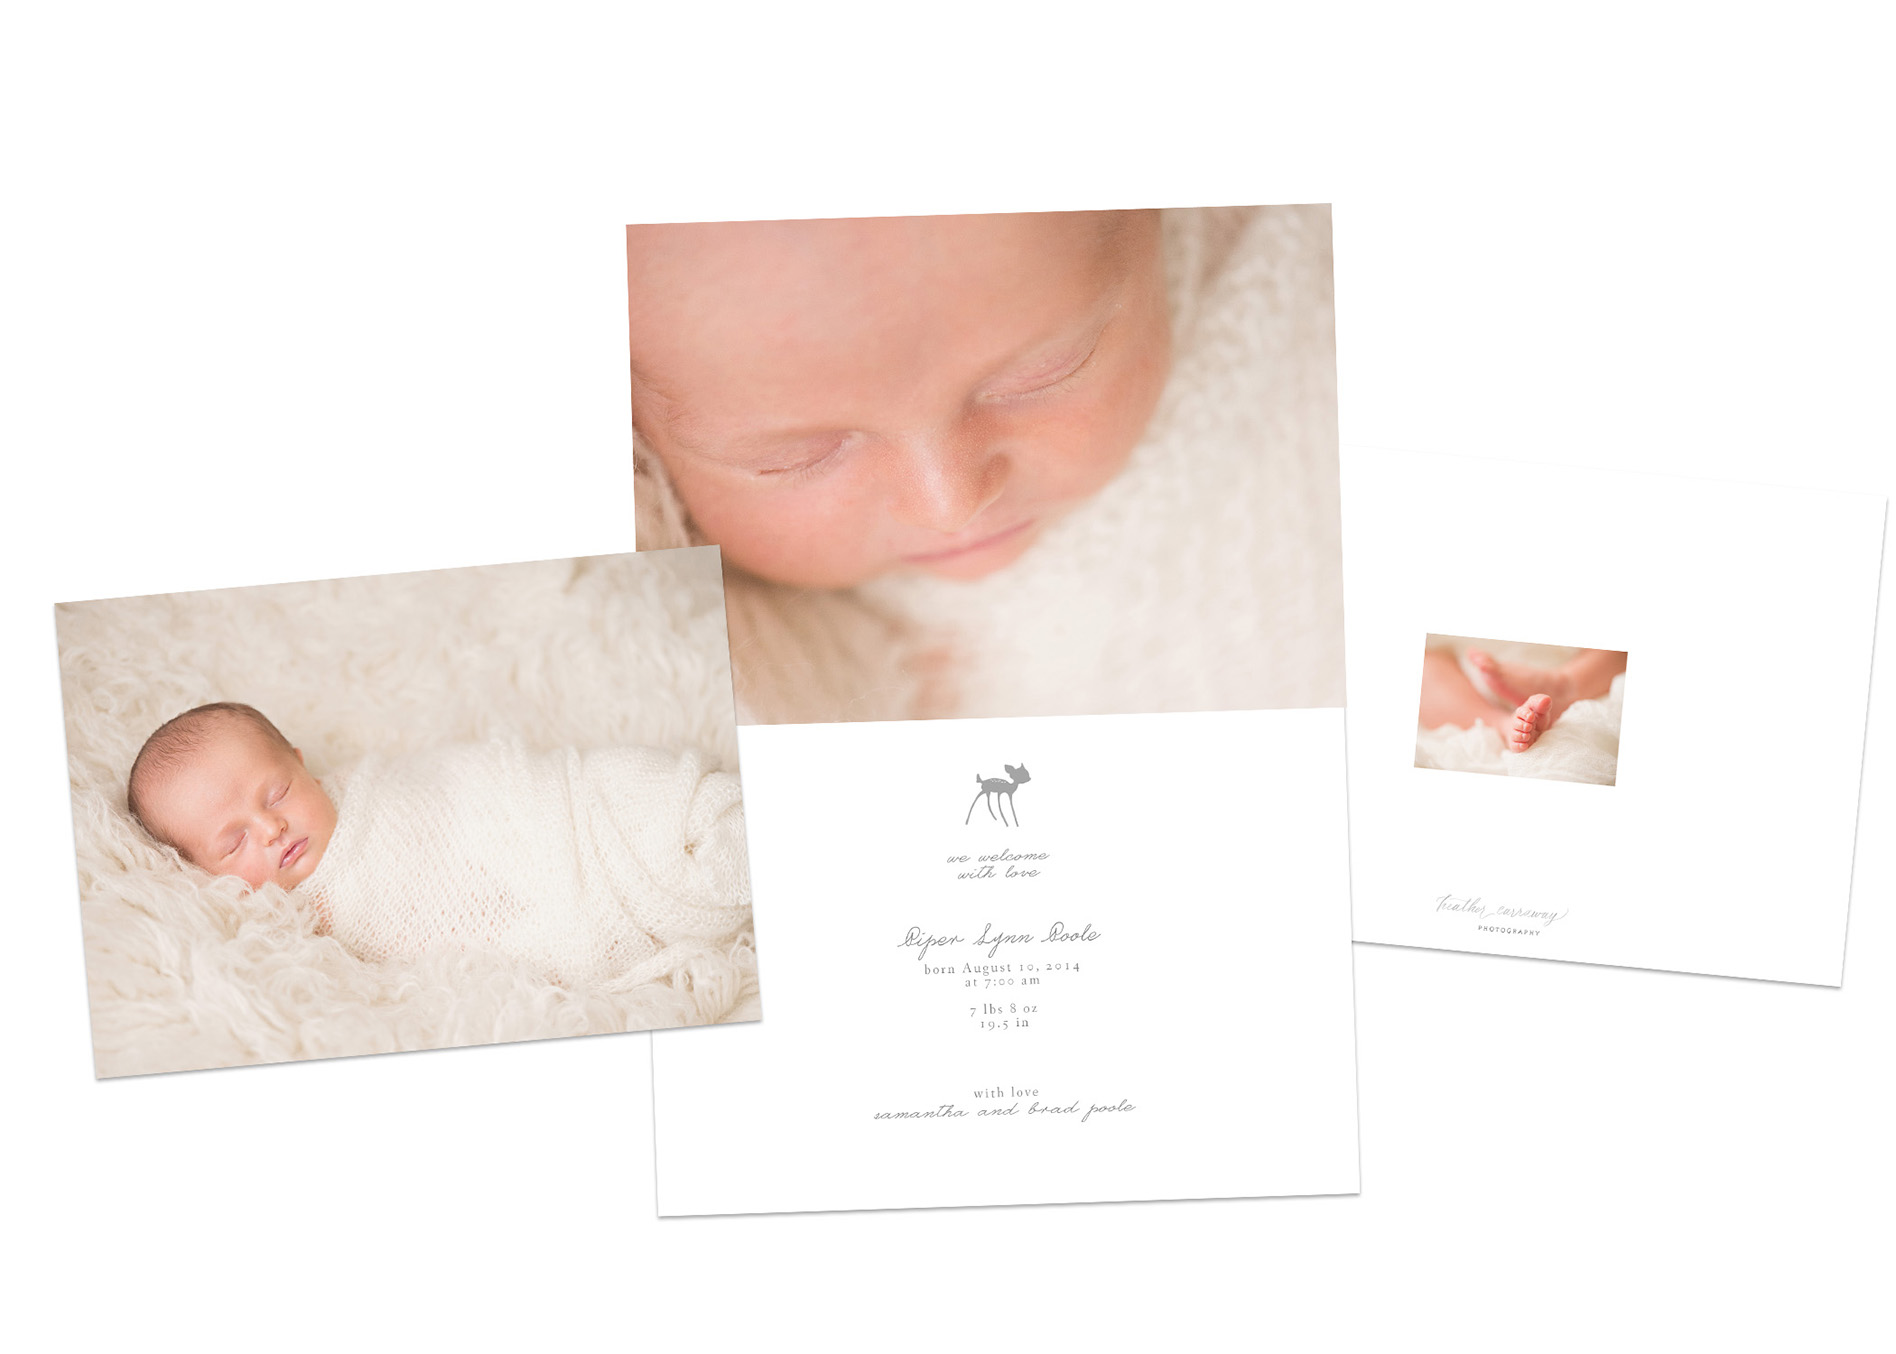 Birth Announcement Email Template Ideas – Birth Announcement Email Template